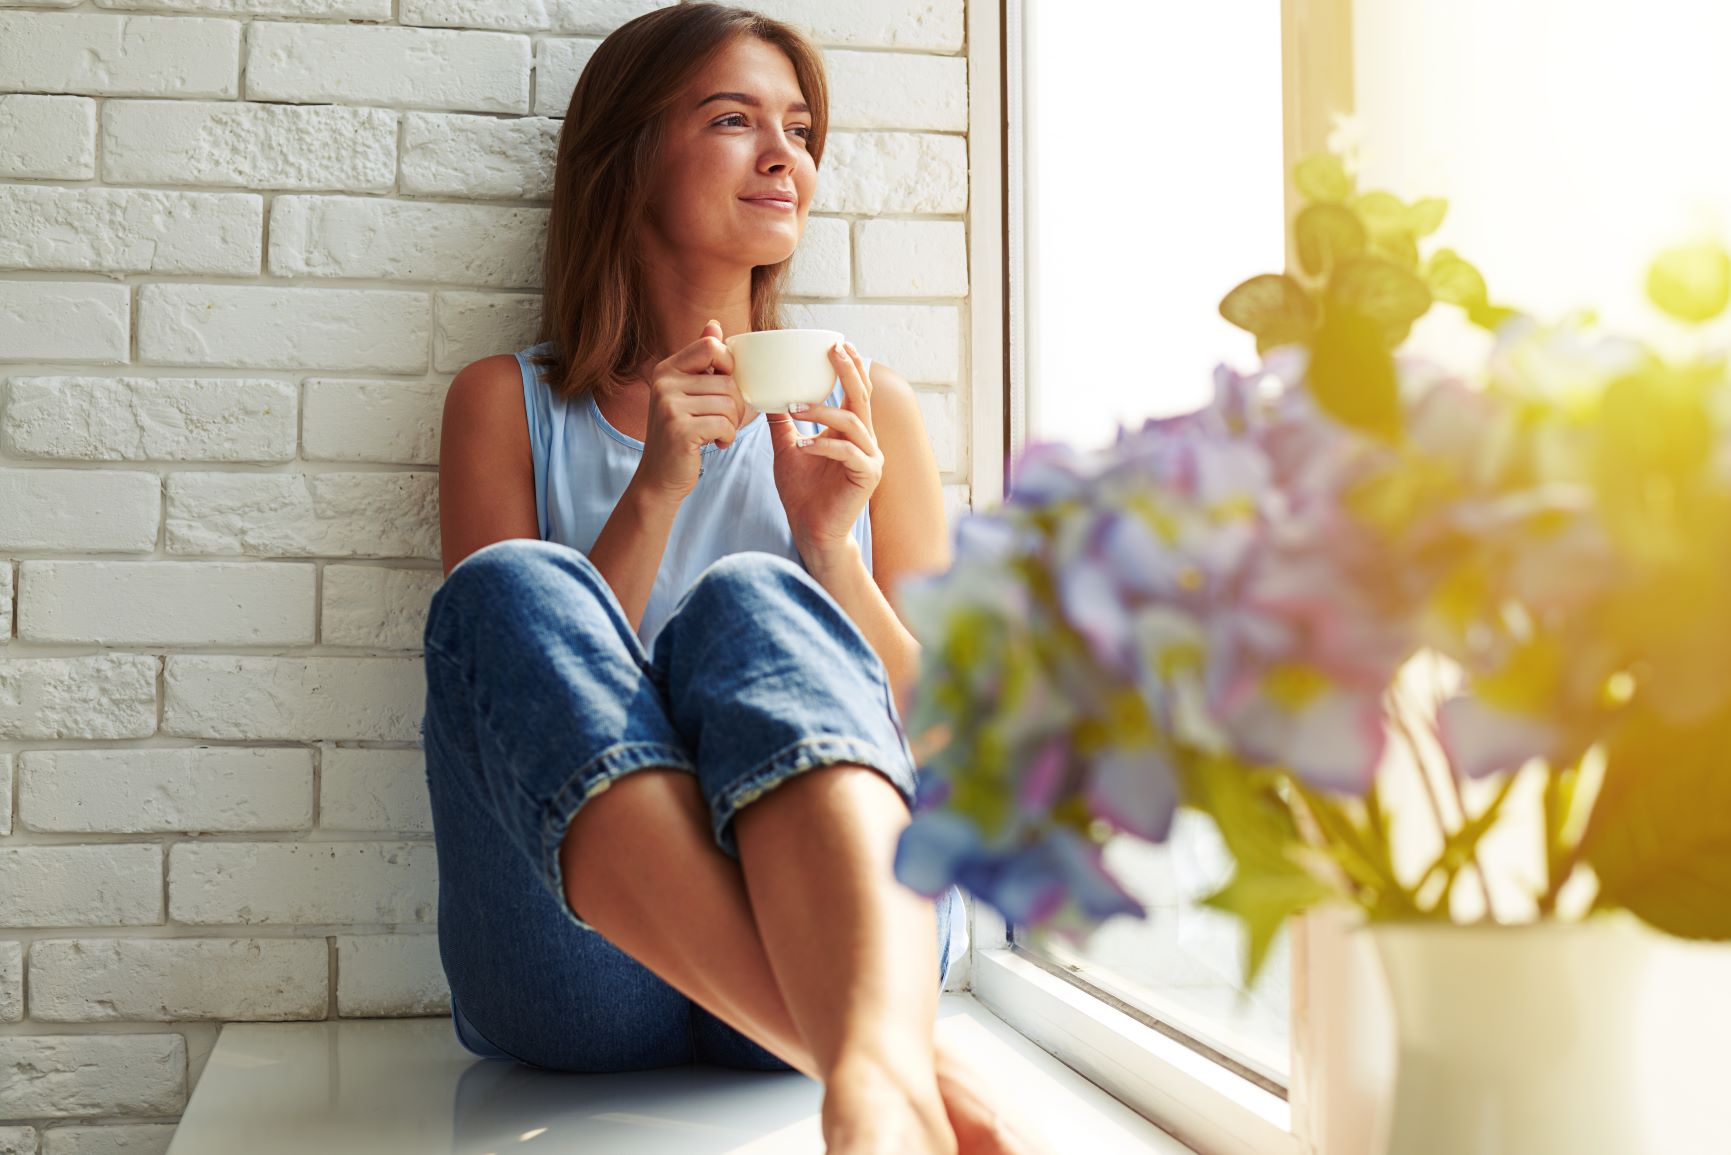 Healthy women in mindfulness